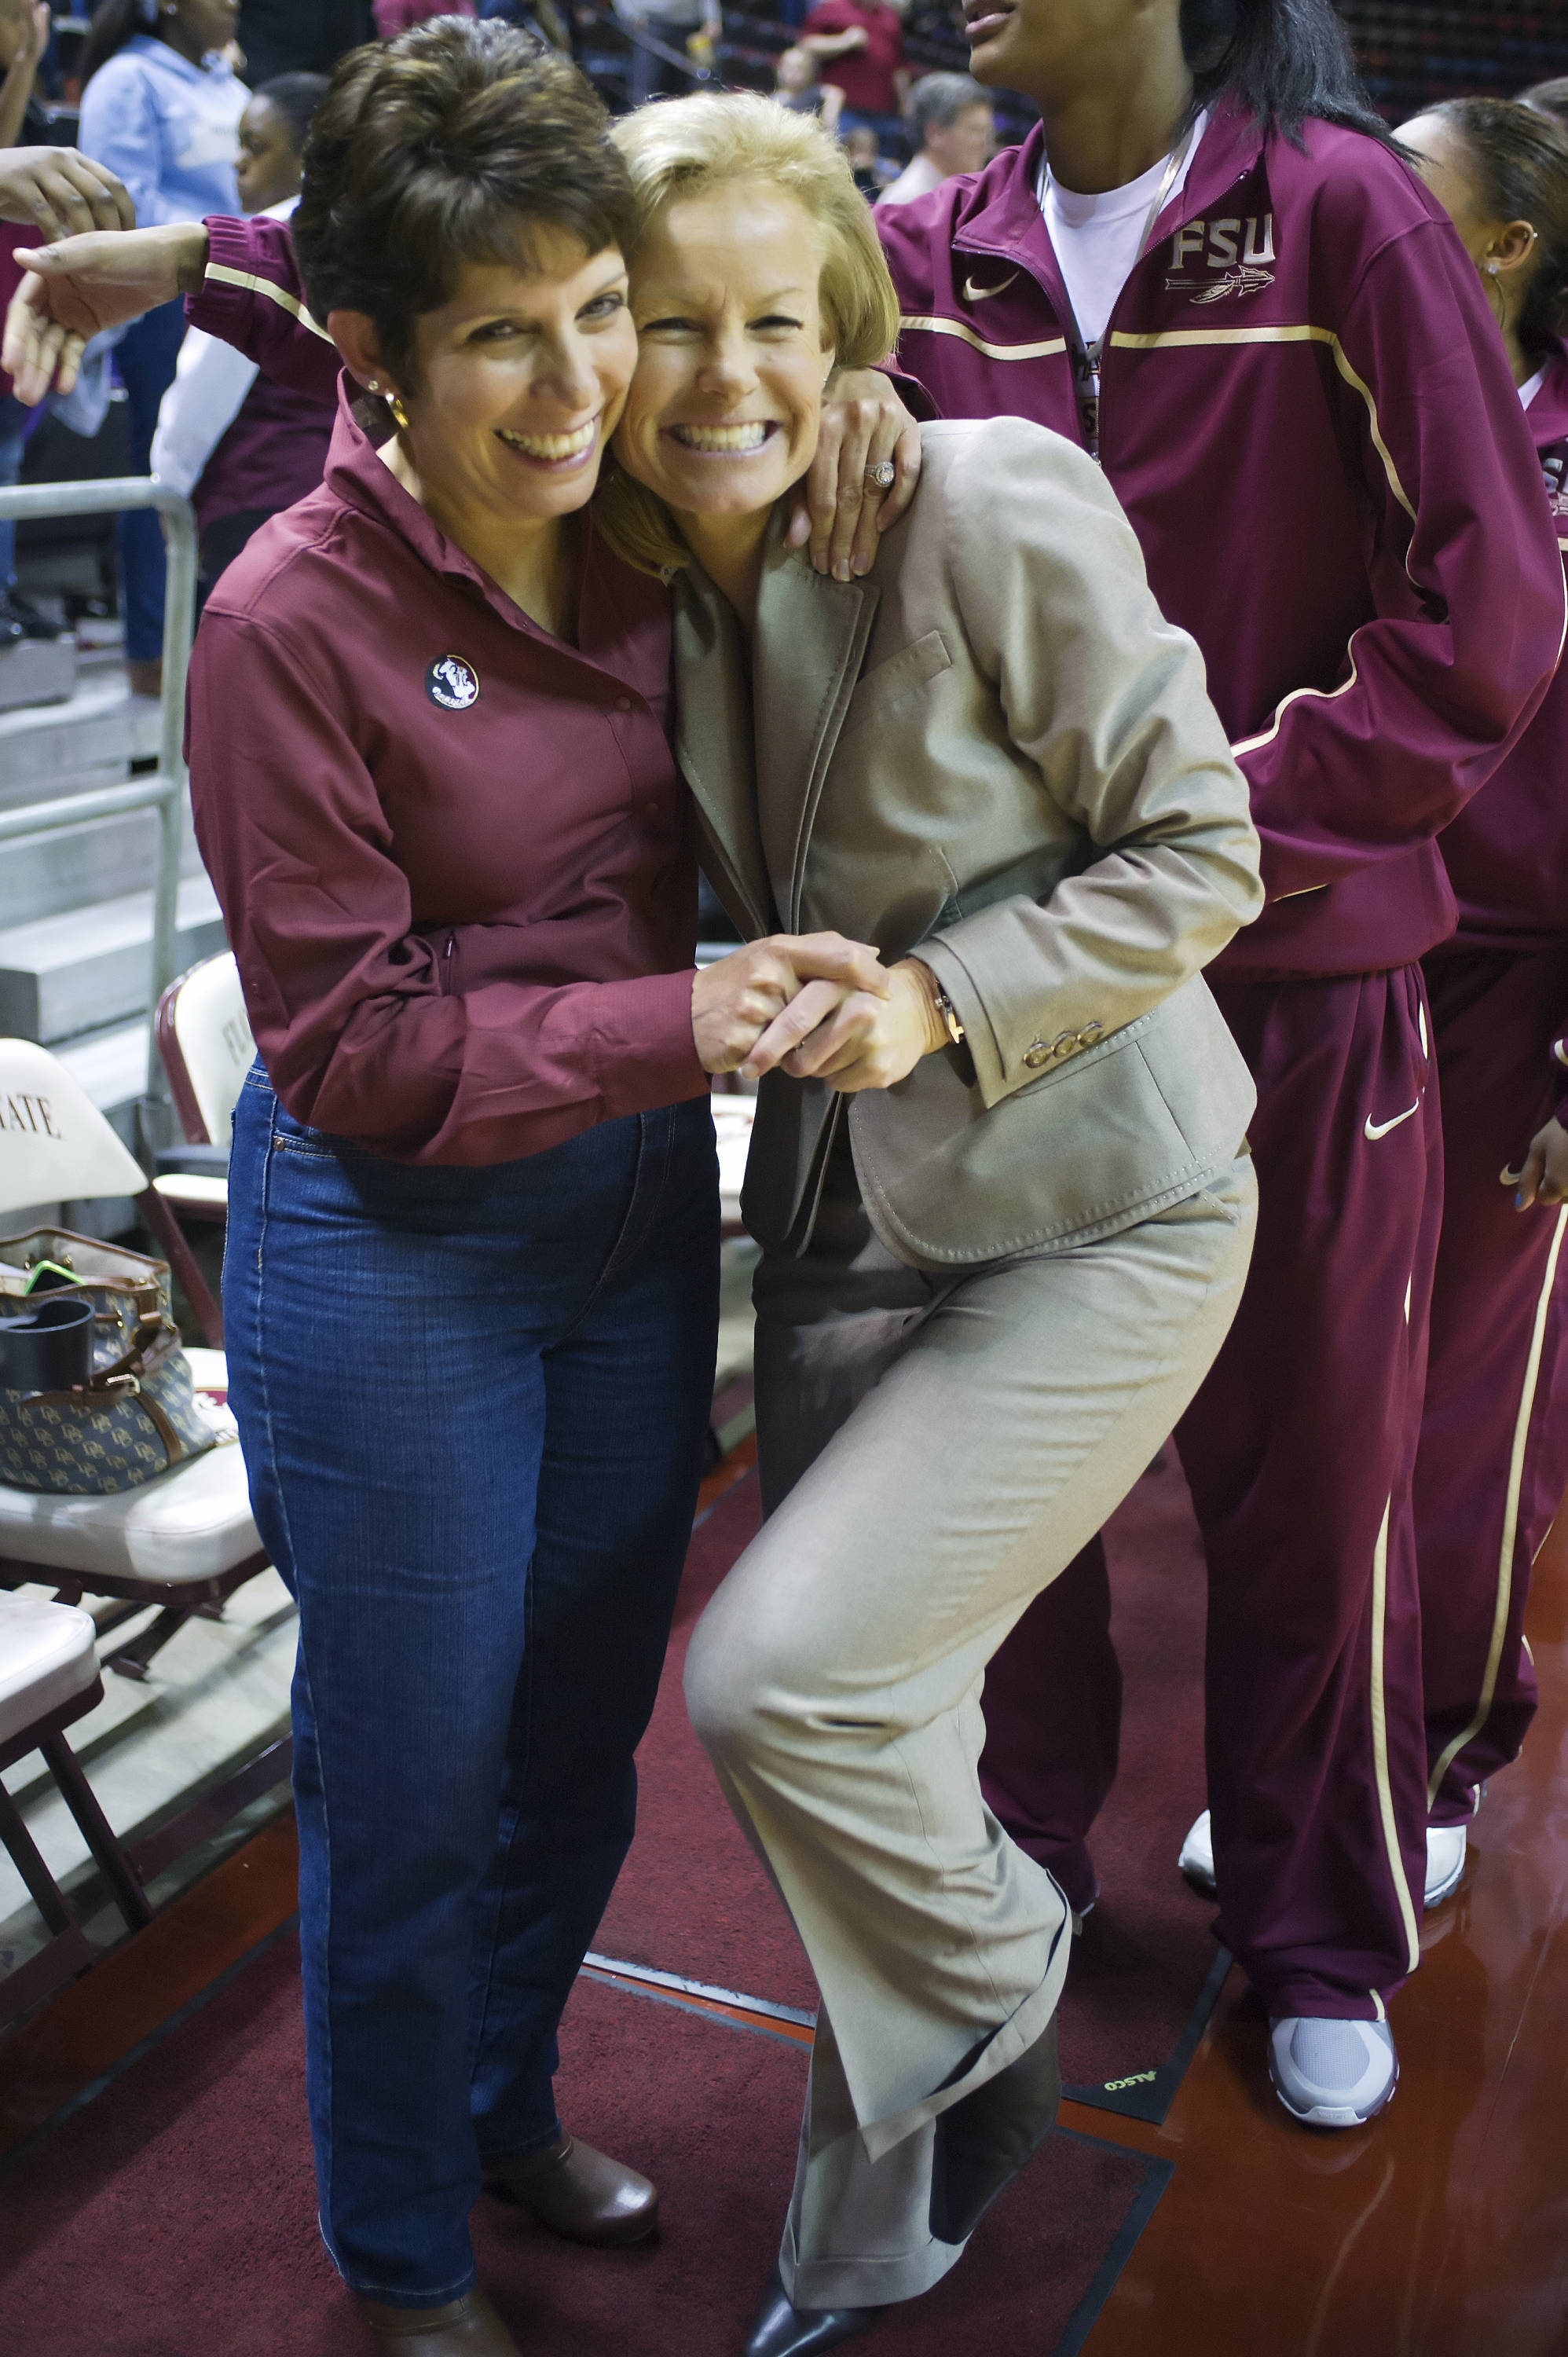 Sue Semrau is congratulated by an FSU fan after the game